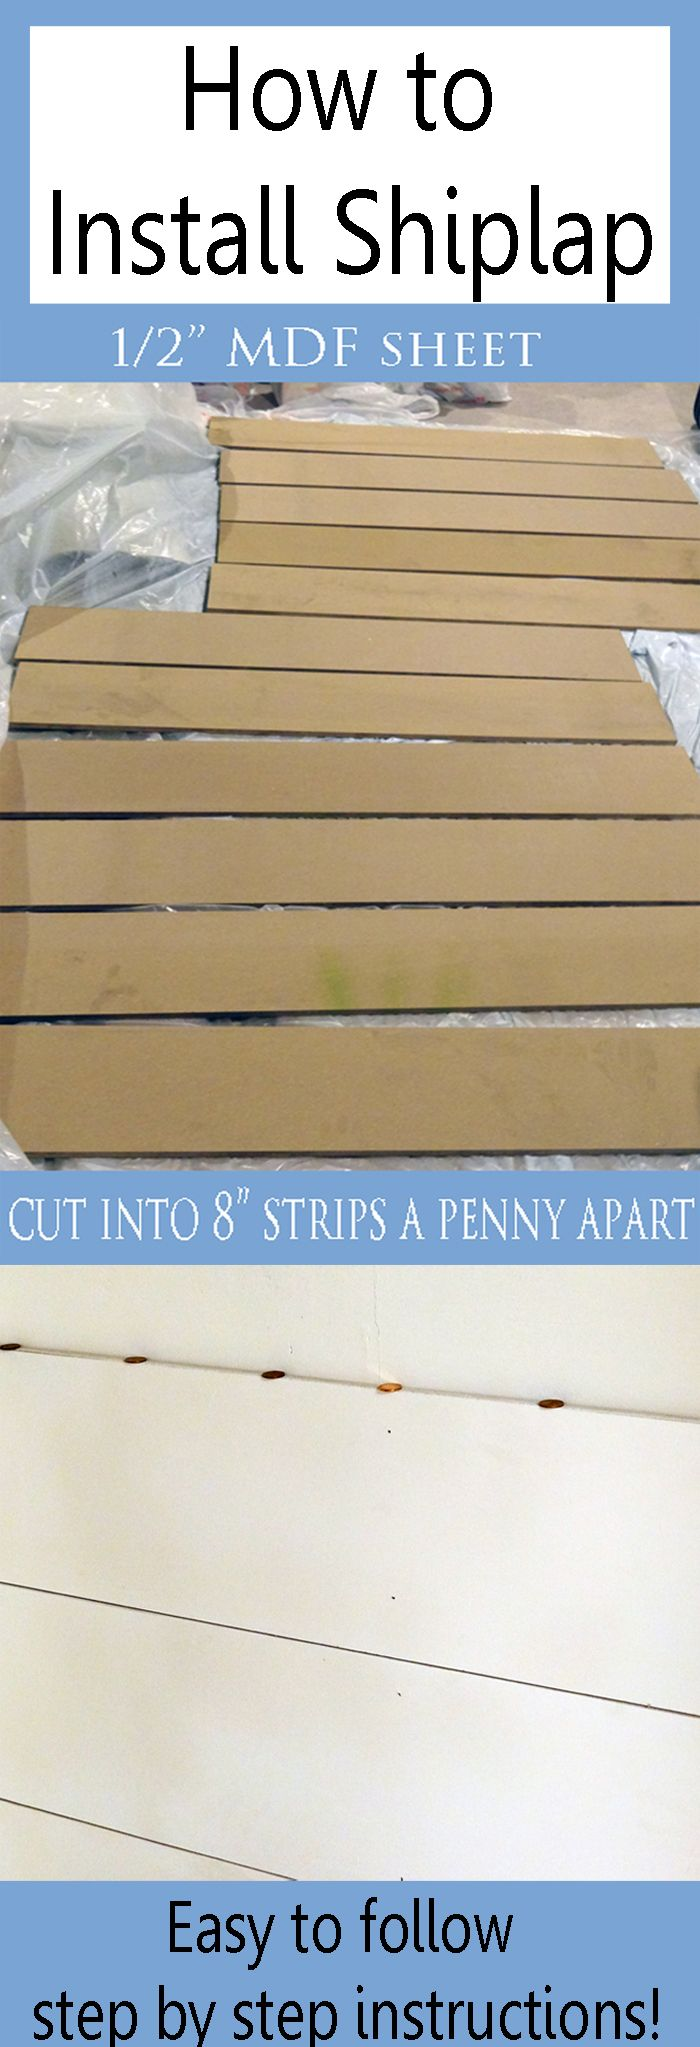 Shiplap is all the rage and is so easy and inexpensive to do!  Come learn how to install shiplap with this step by step tutorial at Provident Home Design.  DIY Home Decor.  DIY Projects.